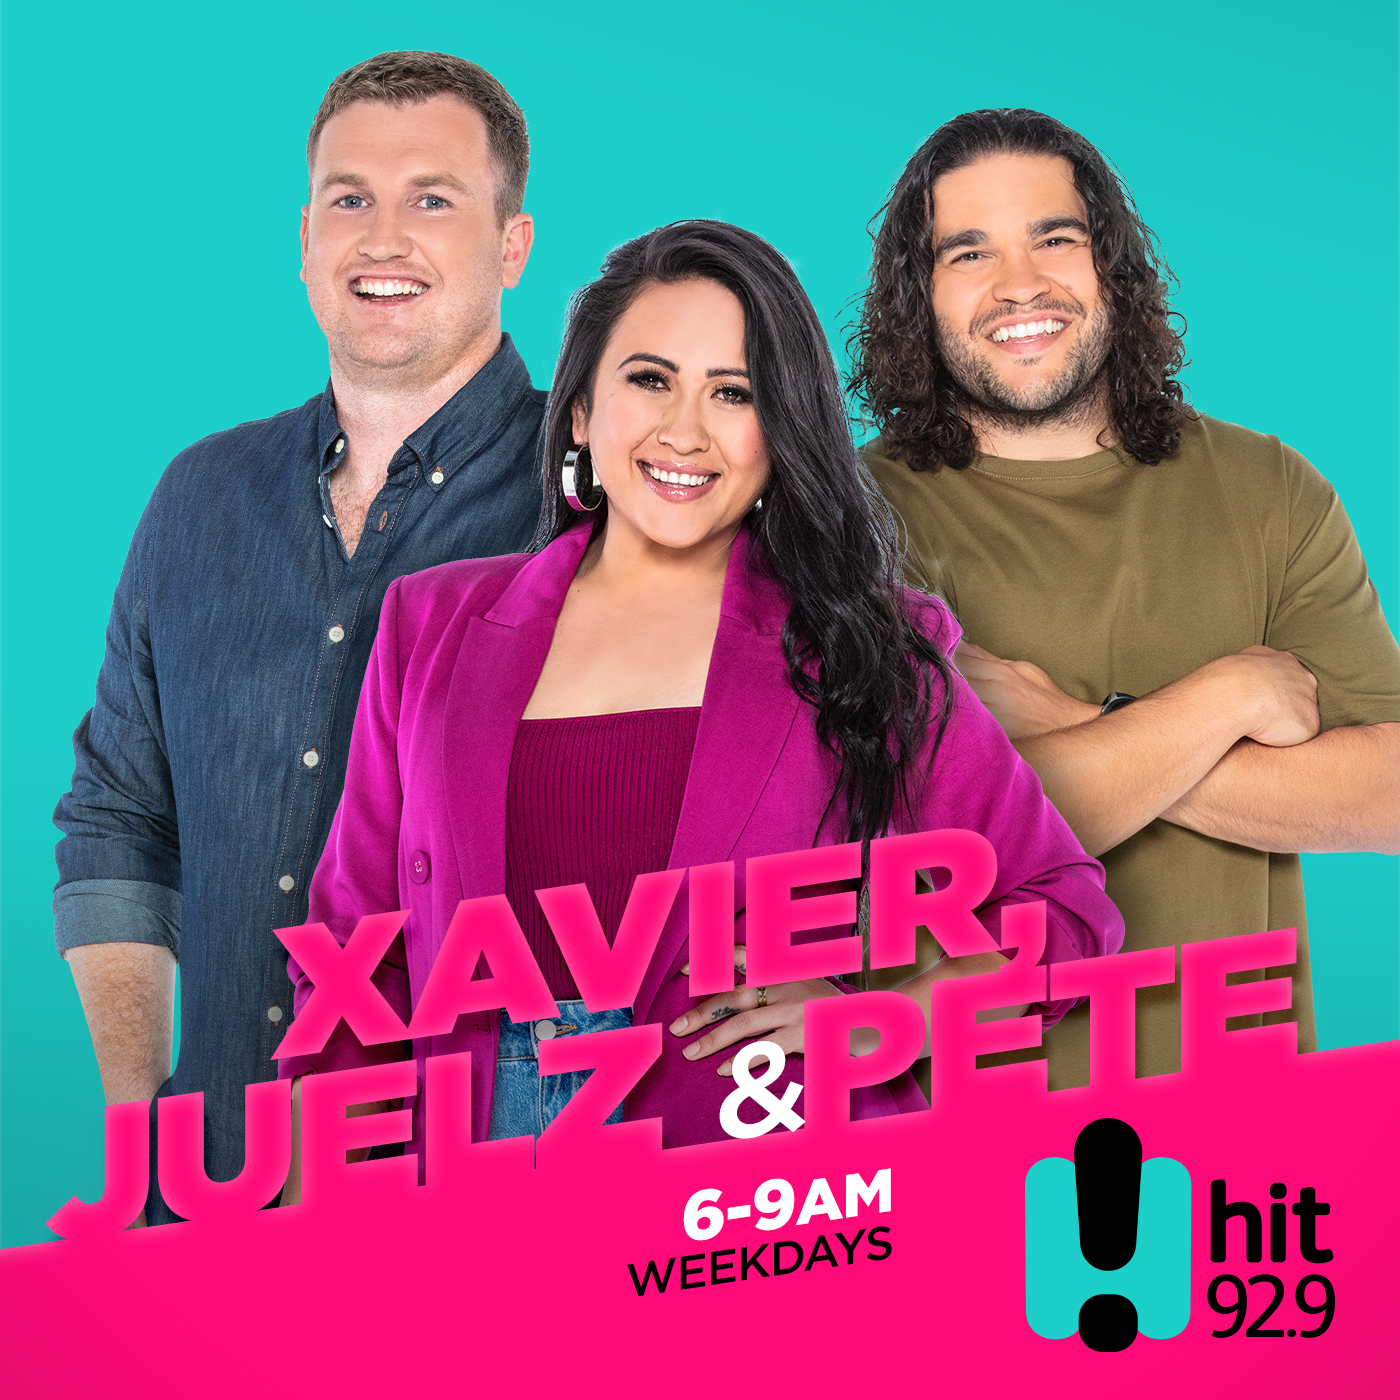 The Heidi, Will and Woody Catch Up - hit92.9 Perth - Heidi Anderson, Will McMahon & Woody Whitelaw